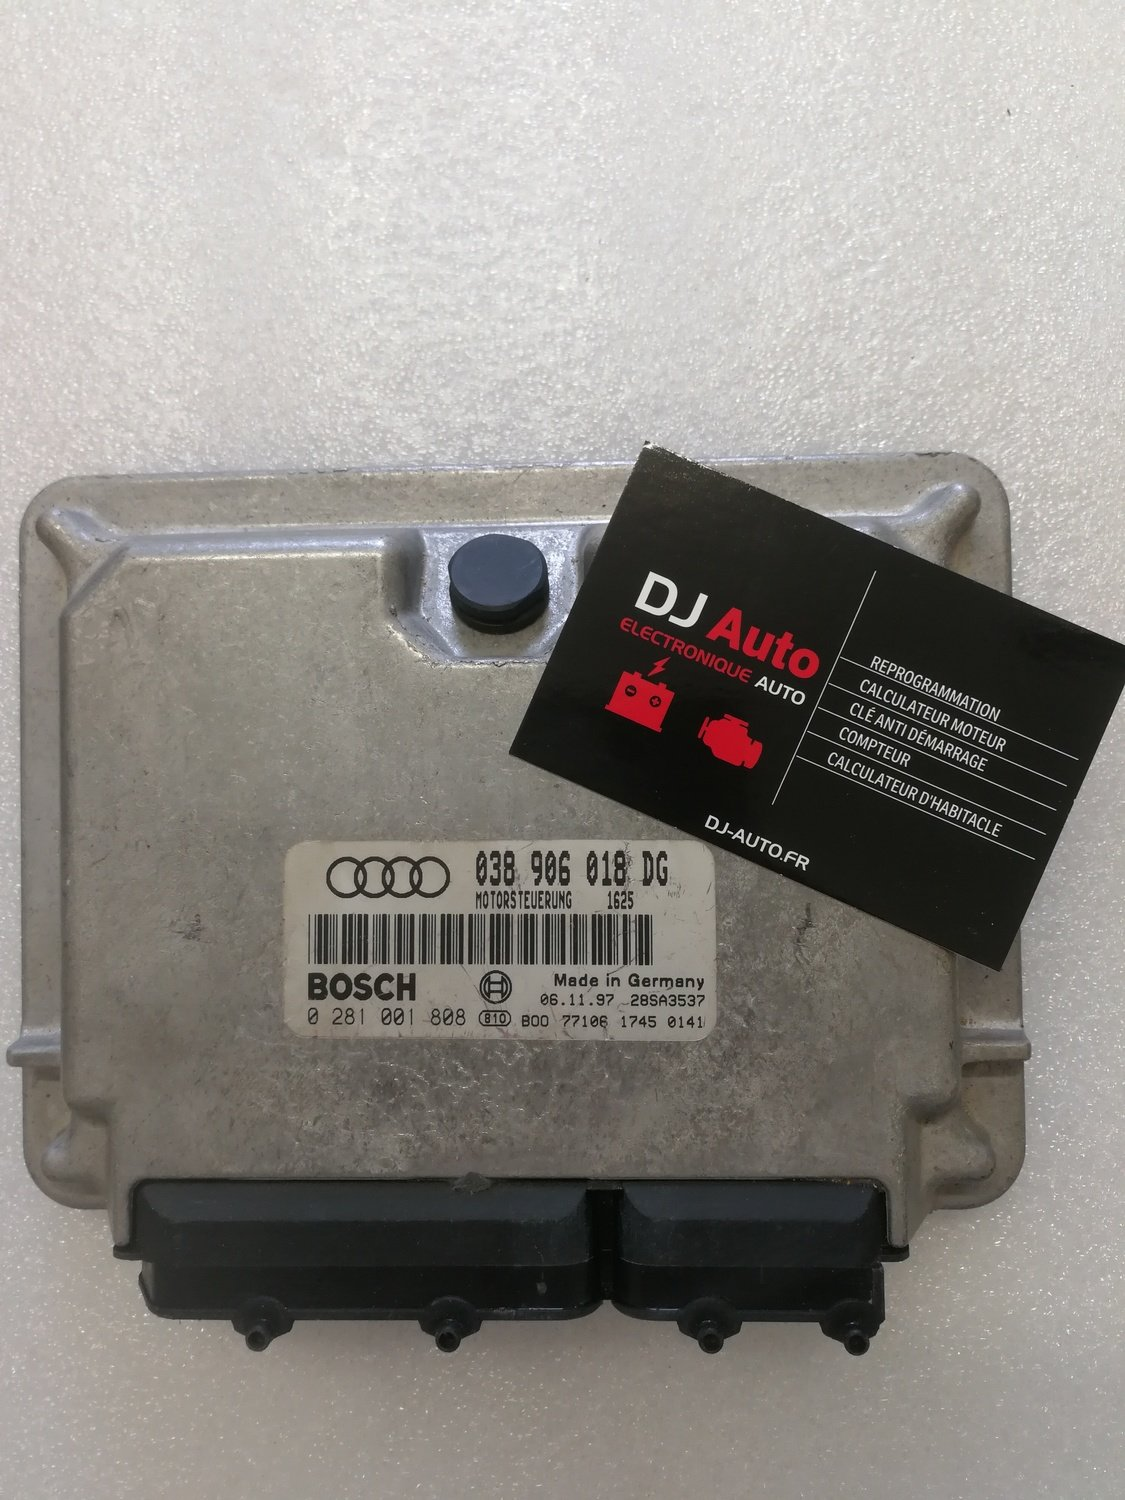 Audi Calculateur moteur A6 1.9 TDI Bosch 038 906 018 DG - 0 281 001 808